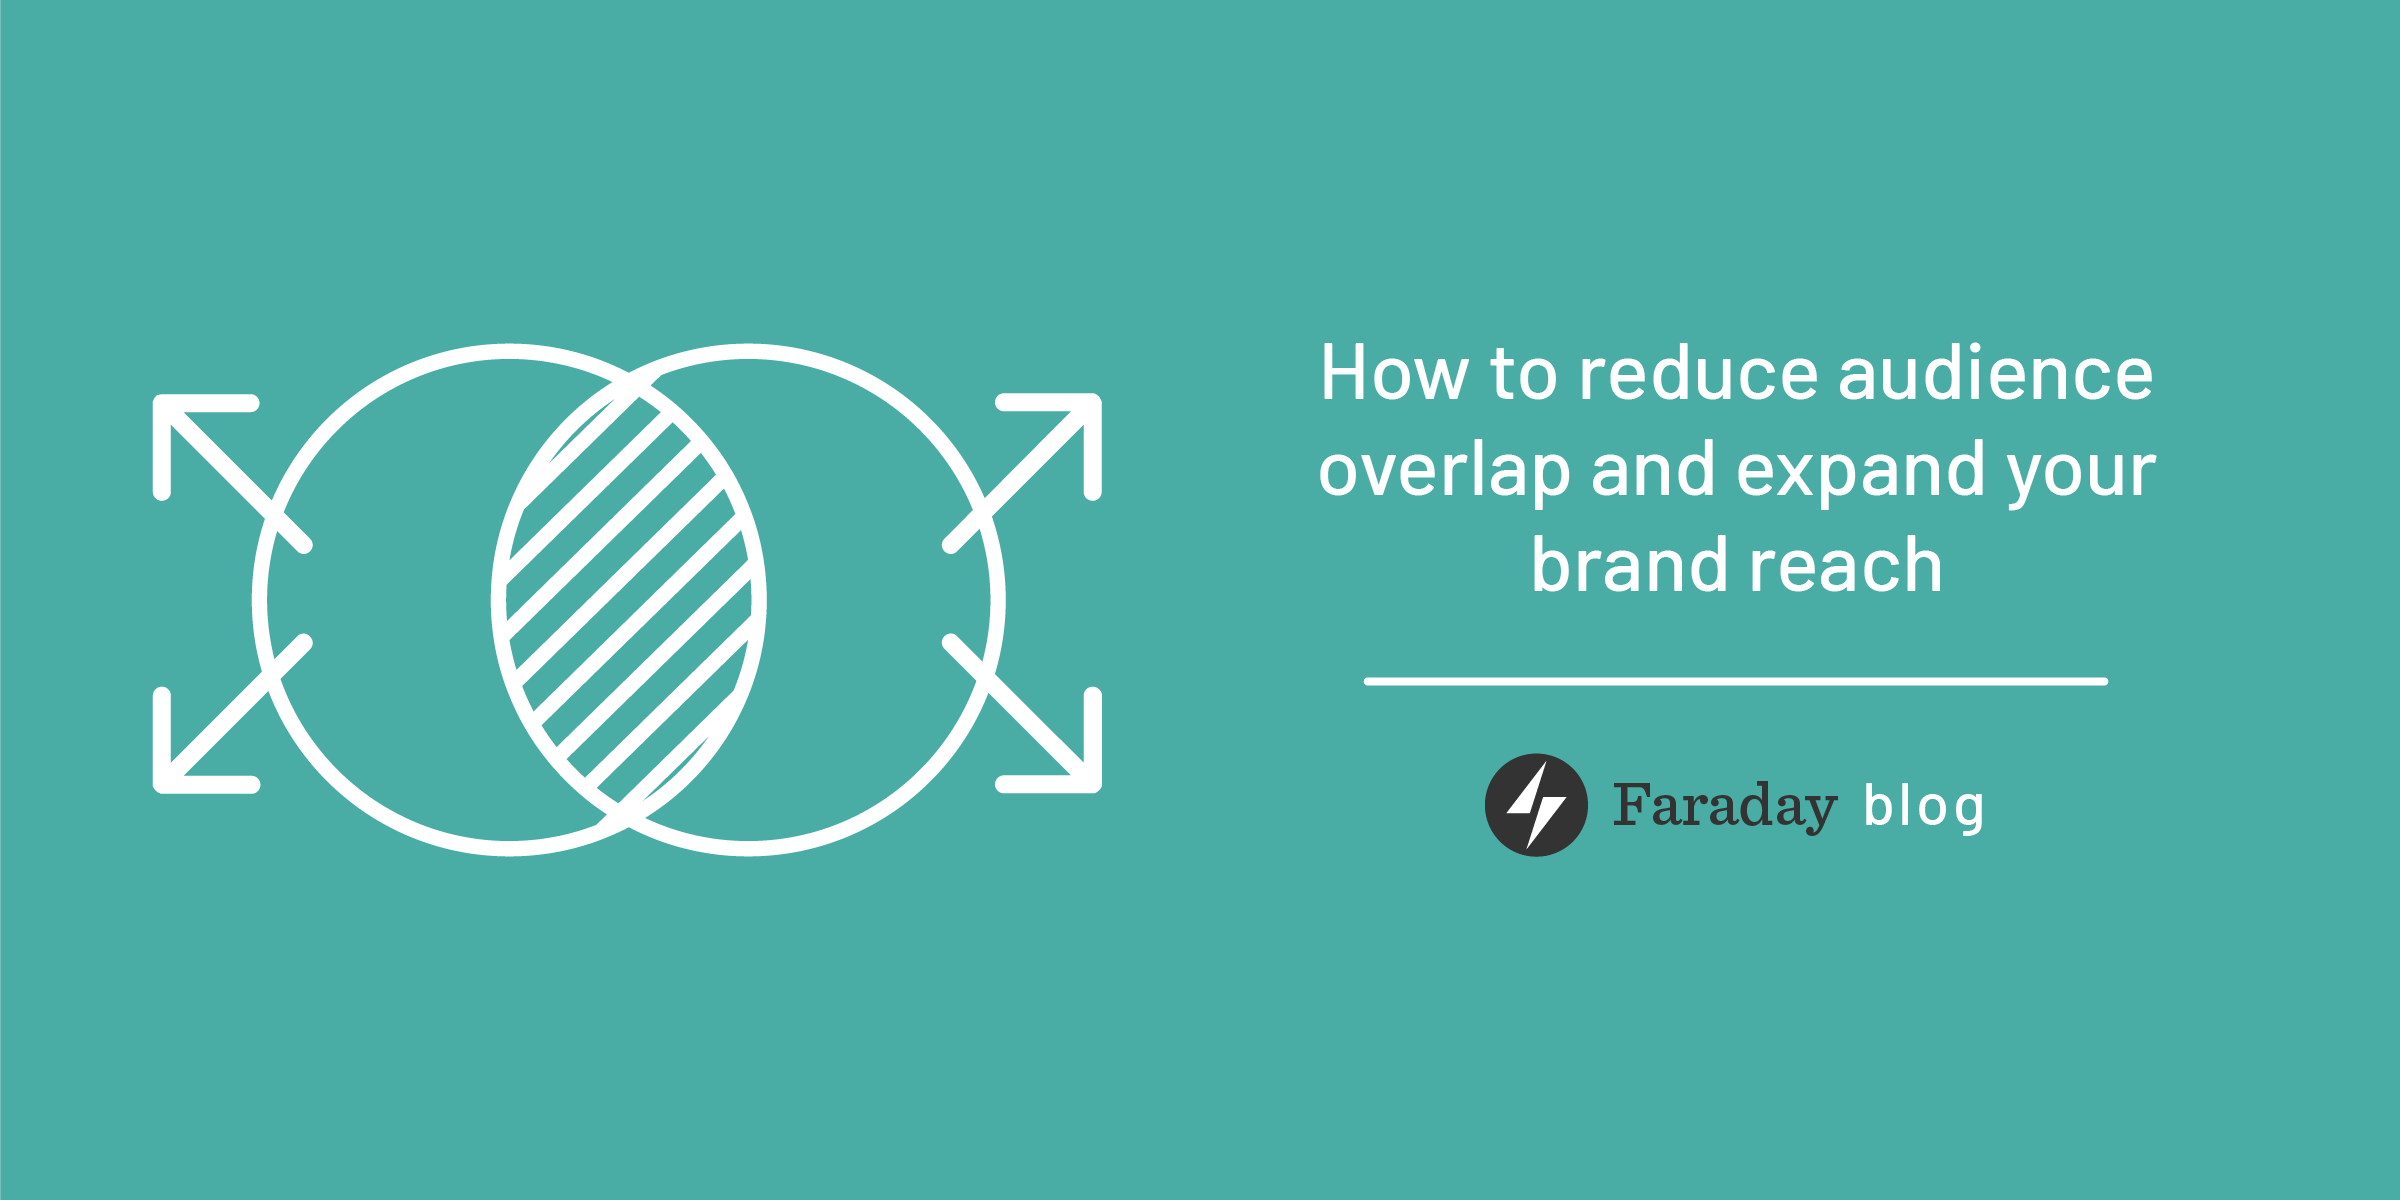 How to reduce audience overlap and expand your brand reach